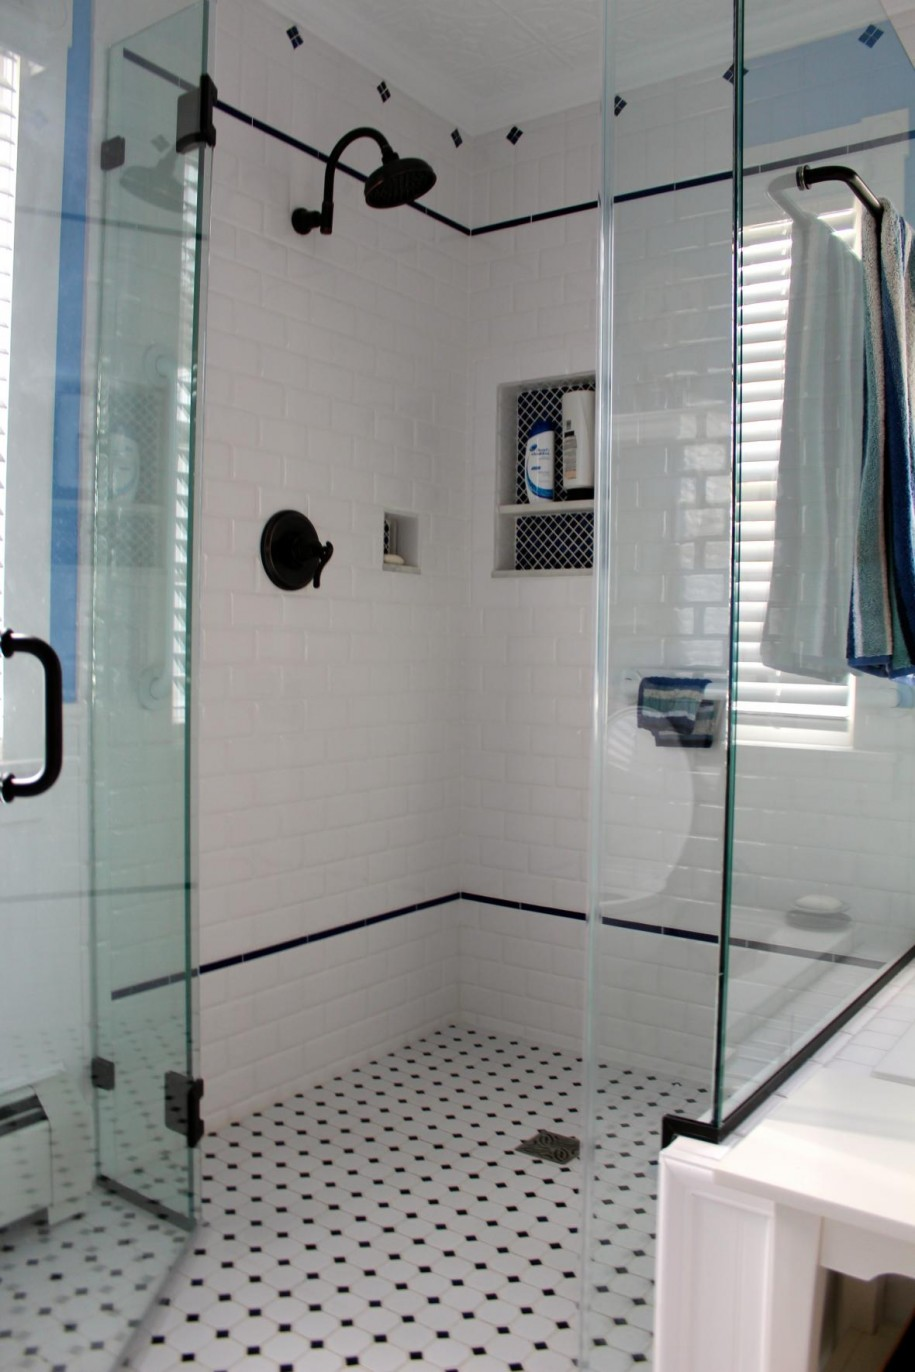 Stunning-Shower-Cubicle-Area-Design-With-Glasses-Door-And-Stunning-Vintage-Bathroom-Tile-Patterns-Ideas